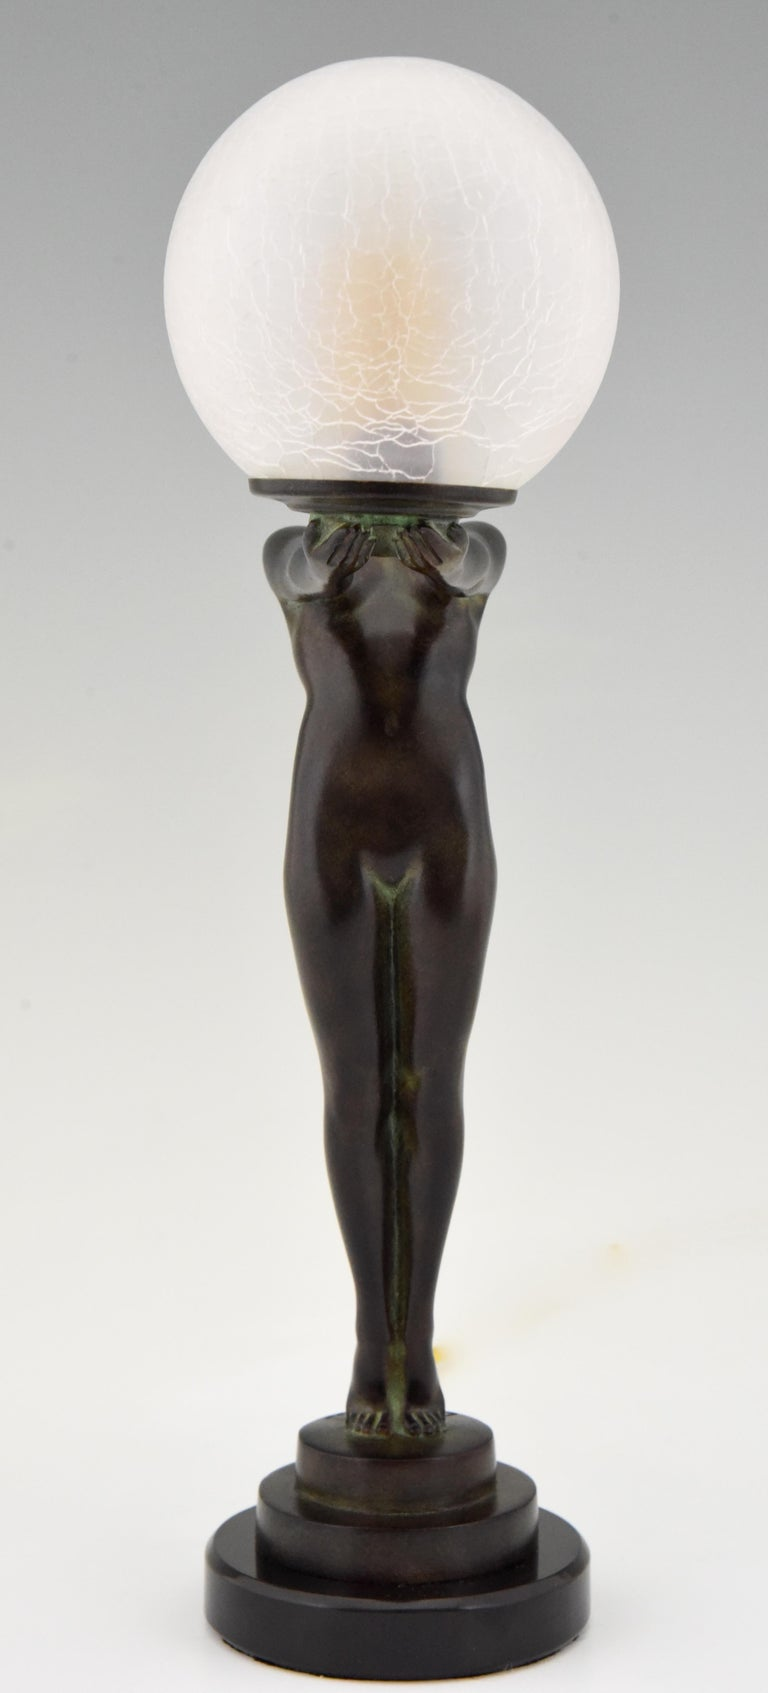 Art Deco Figural Lamp Standing Nude Holding a Glass Shade Max Le Verrier Clarté In New Condition For Sale In Antwerp, BE